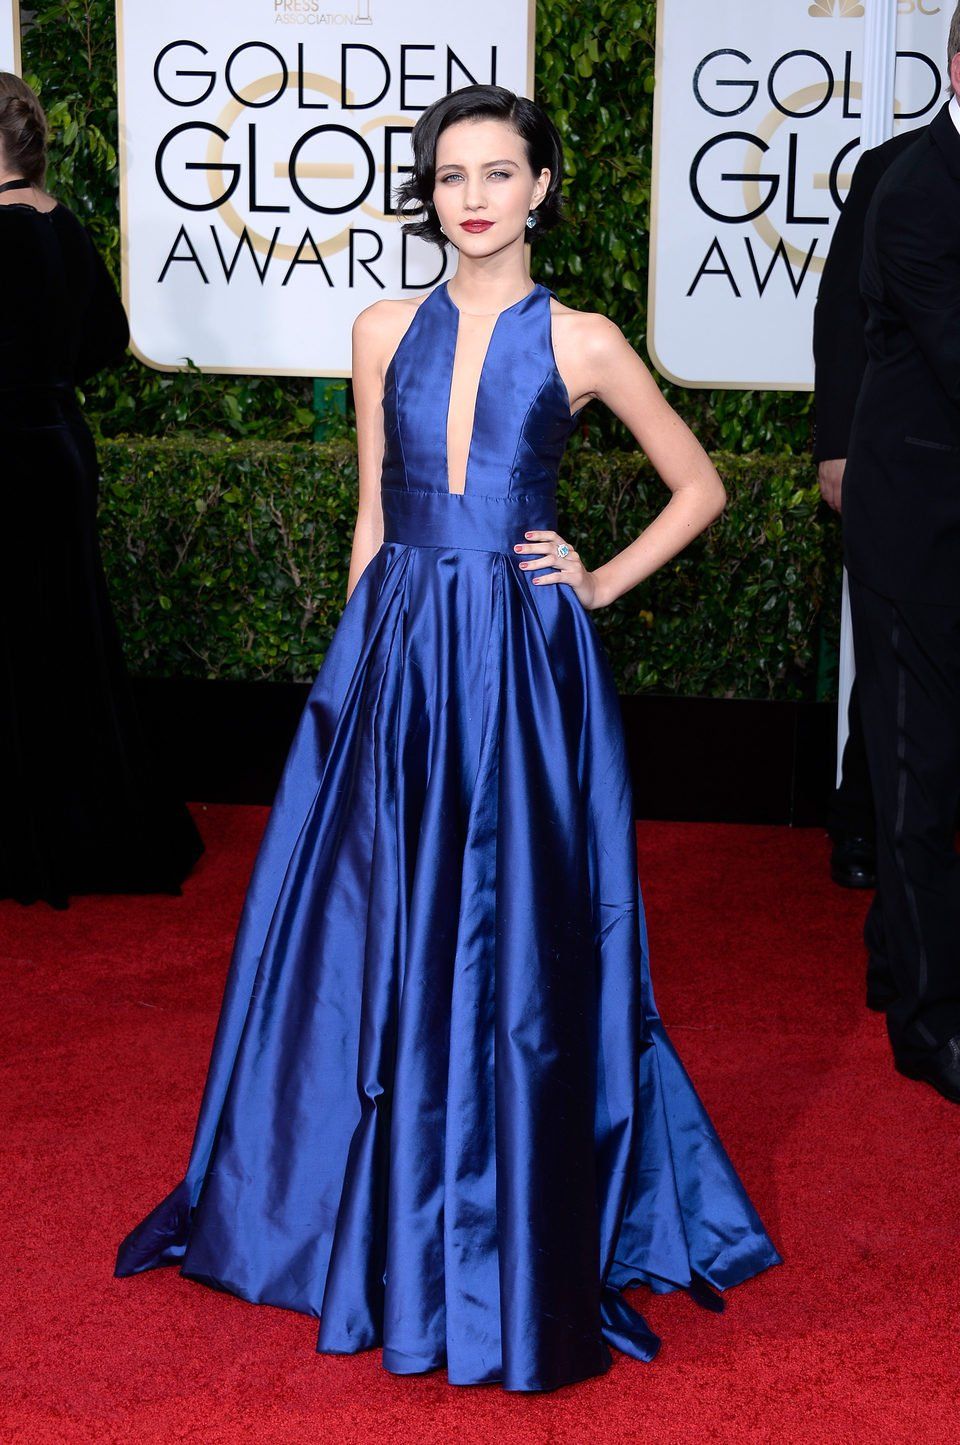 Julia Goldani Telles at the Golden Globes 2015 red carpet